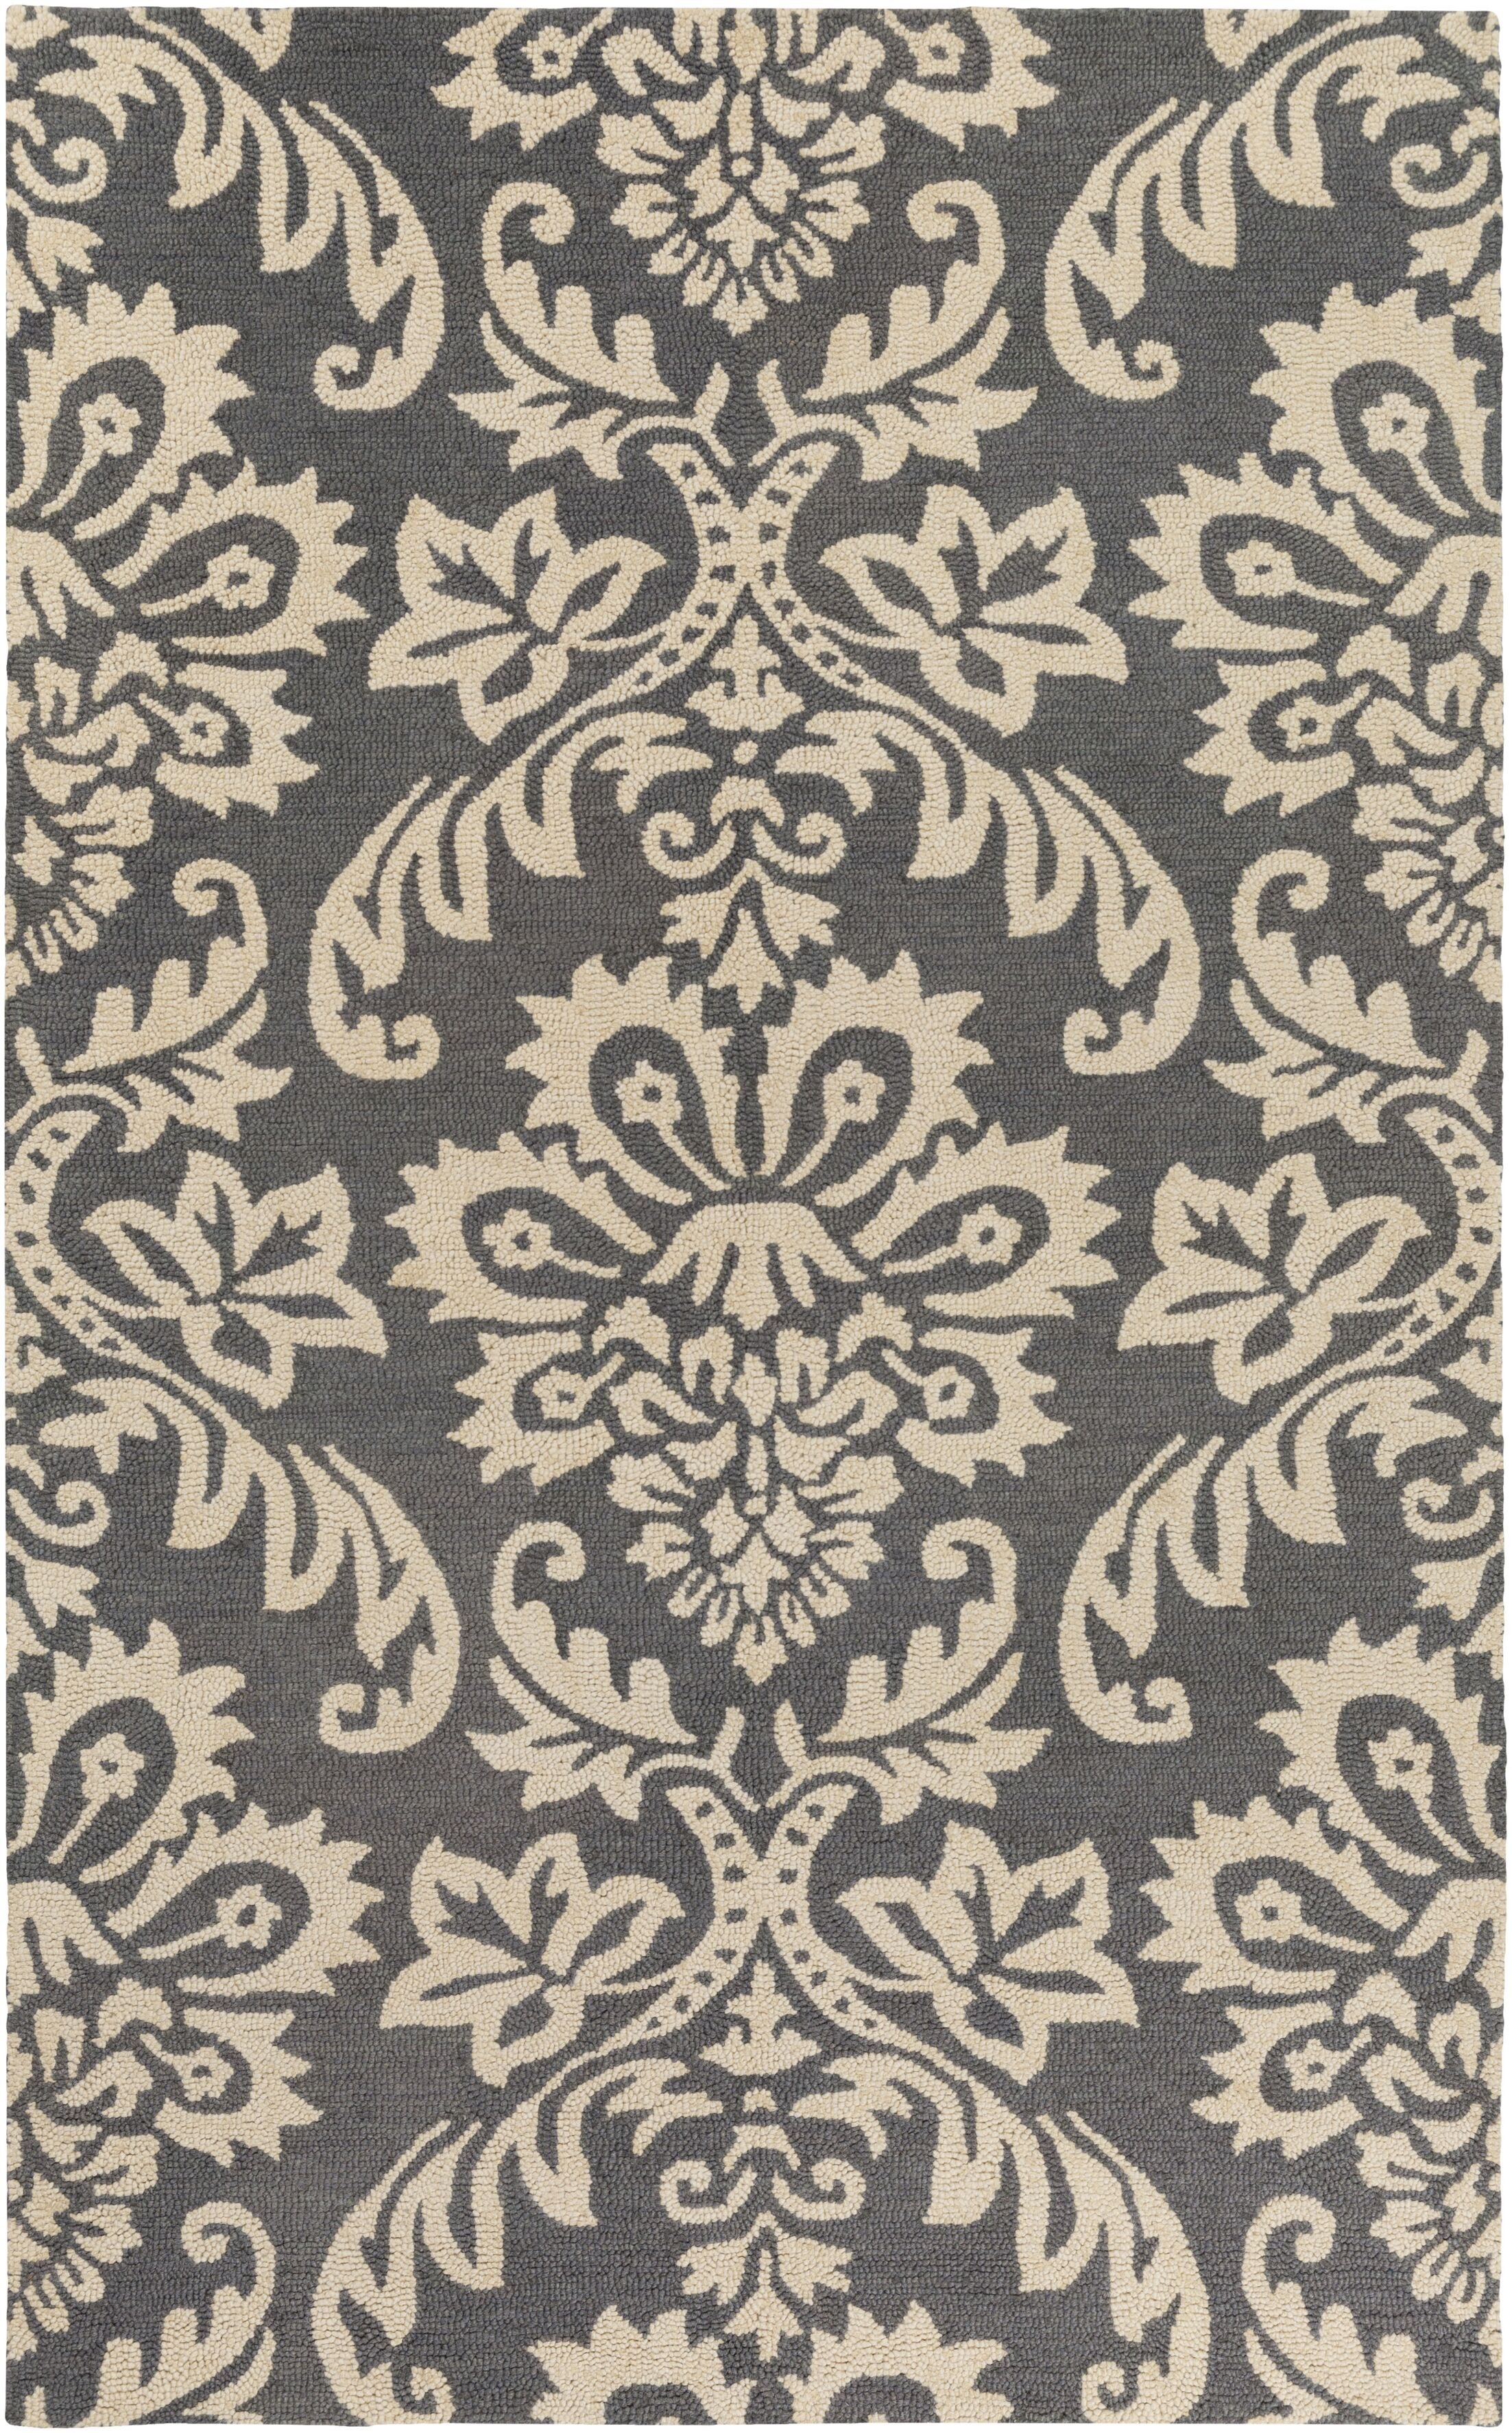 Kimberlin Hand-Tufted Dark Gray/Off-White Area Rug Rug Size: Rectangle 5' x 8'